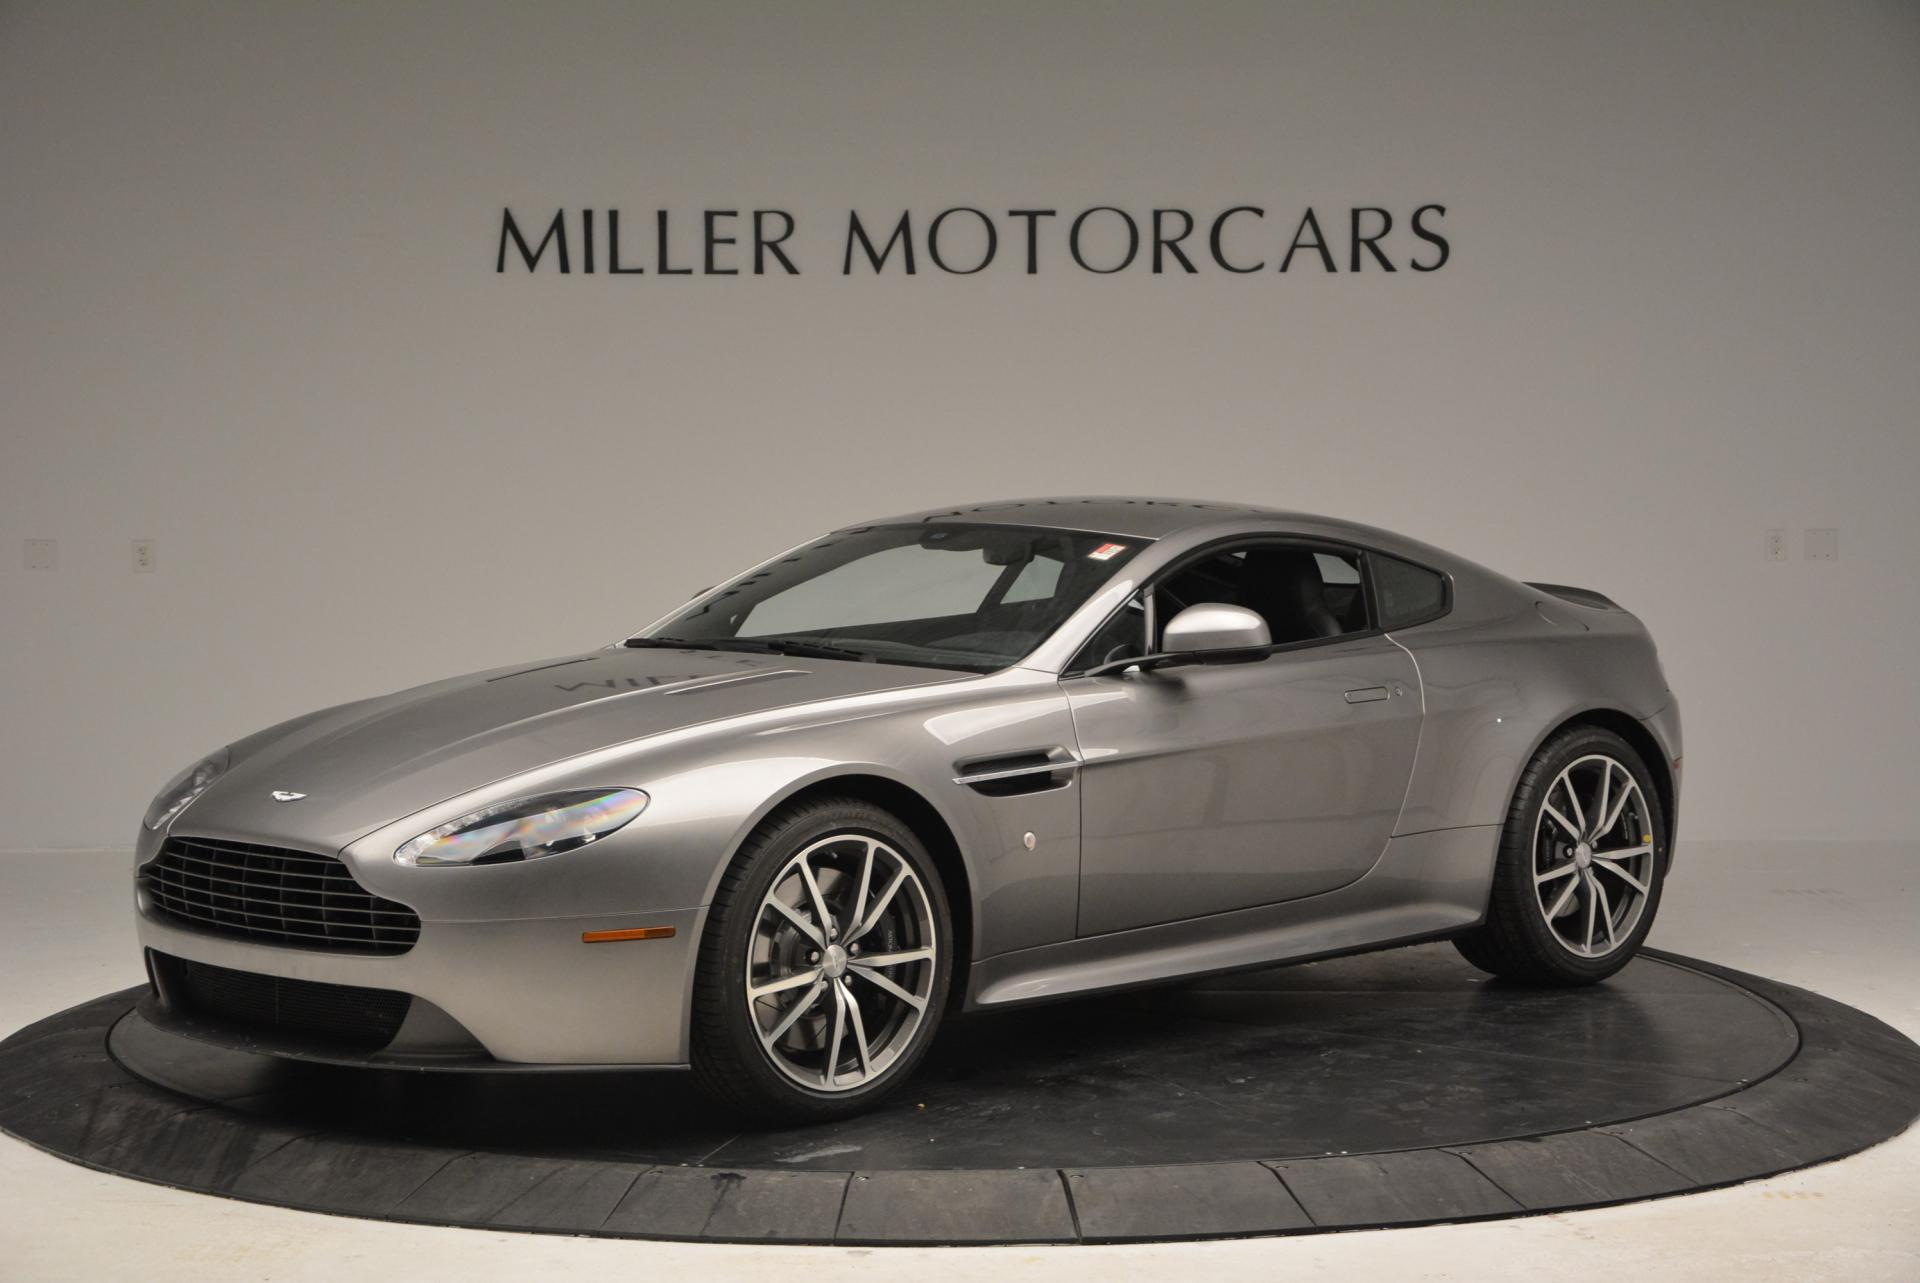 Used 2016 Aston Martin V8 Vantage GT Coupe for sale Sold at Bugatti of Greenwich in Greenwich CT 06830 1